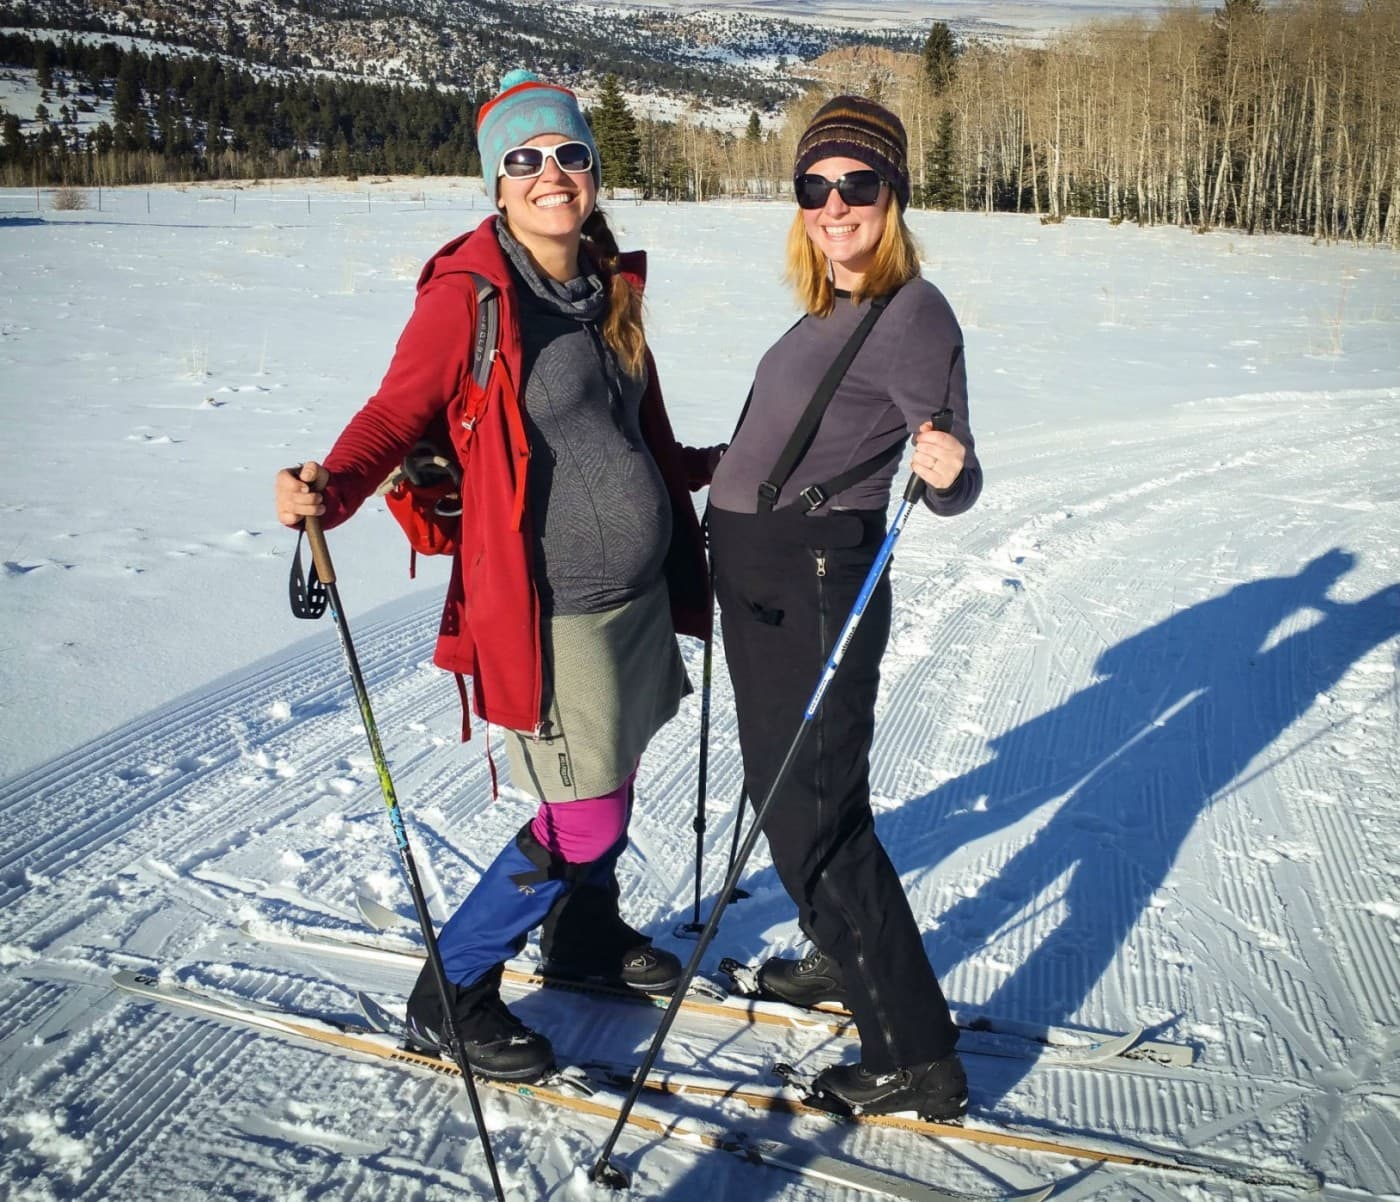 Two pregnant women cross country skiing